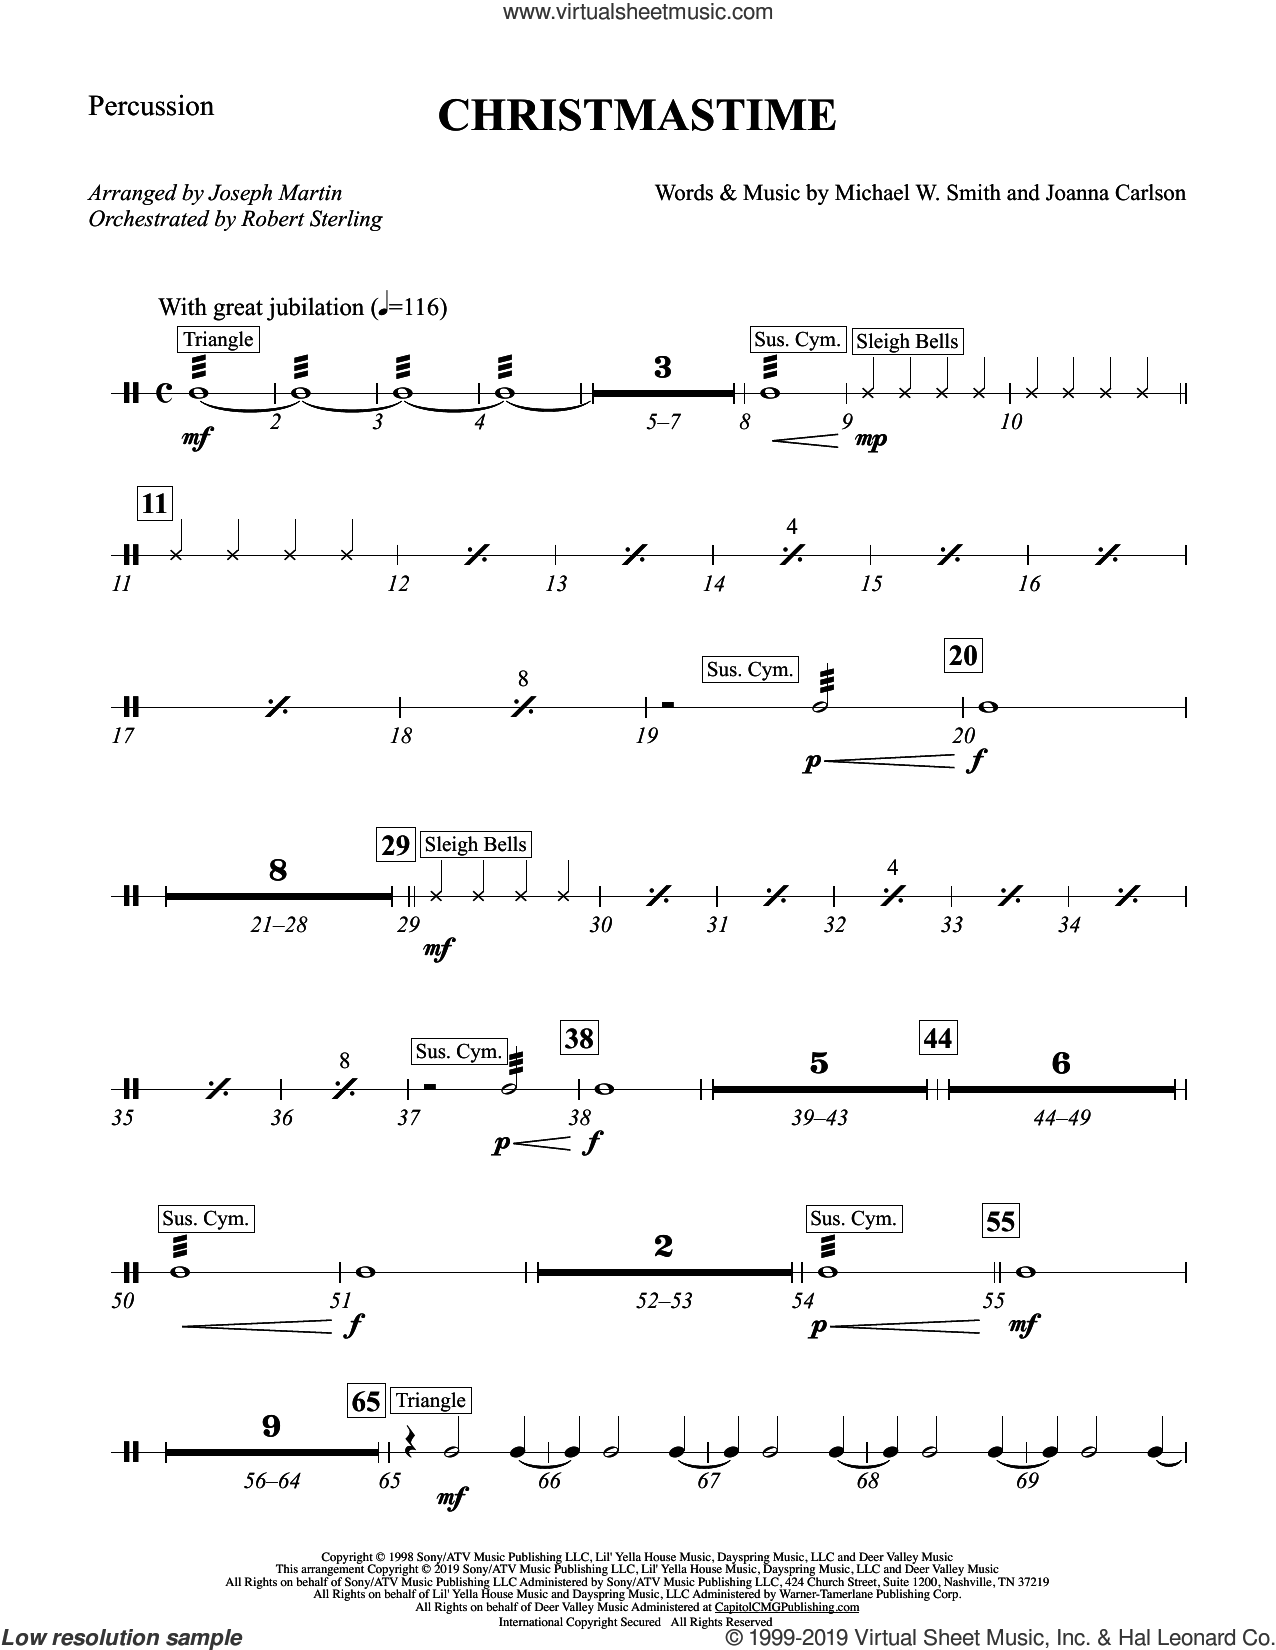 Christmastime (arr. Joseph M. Martin) sheet music for orchestra/band (percussion) by Michael W. Smith, Joseph M. Martin, Joanna Carlson and Michael W. Smith & Joanna Carlson, intermediate skill level